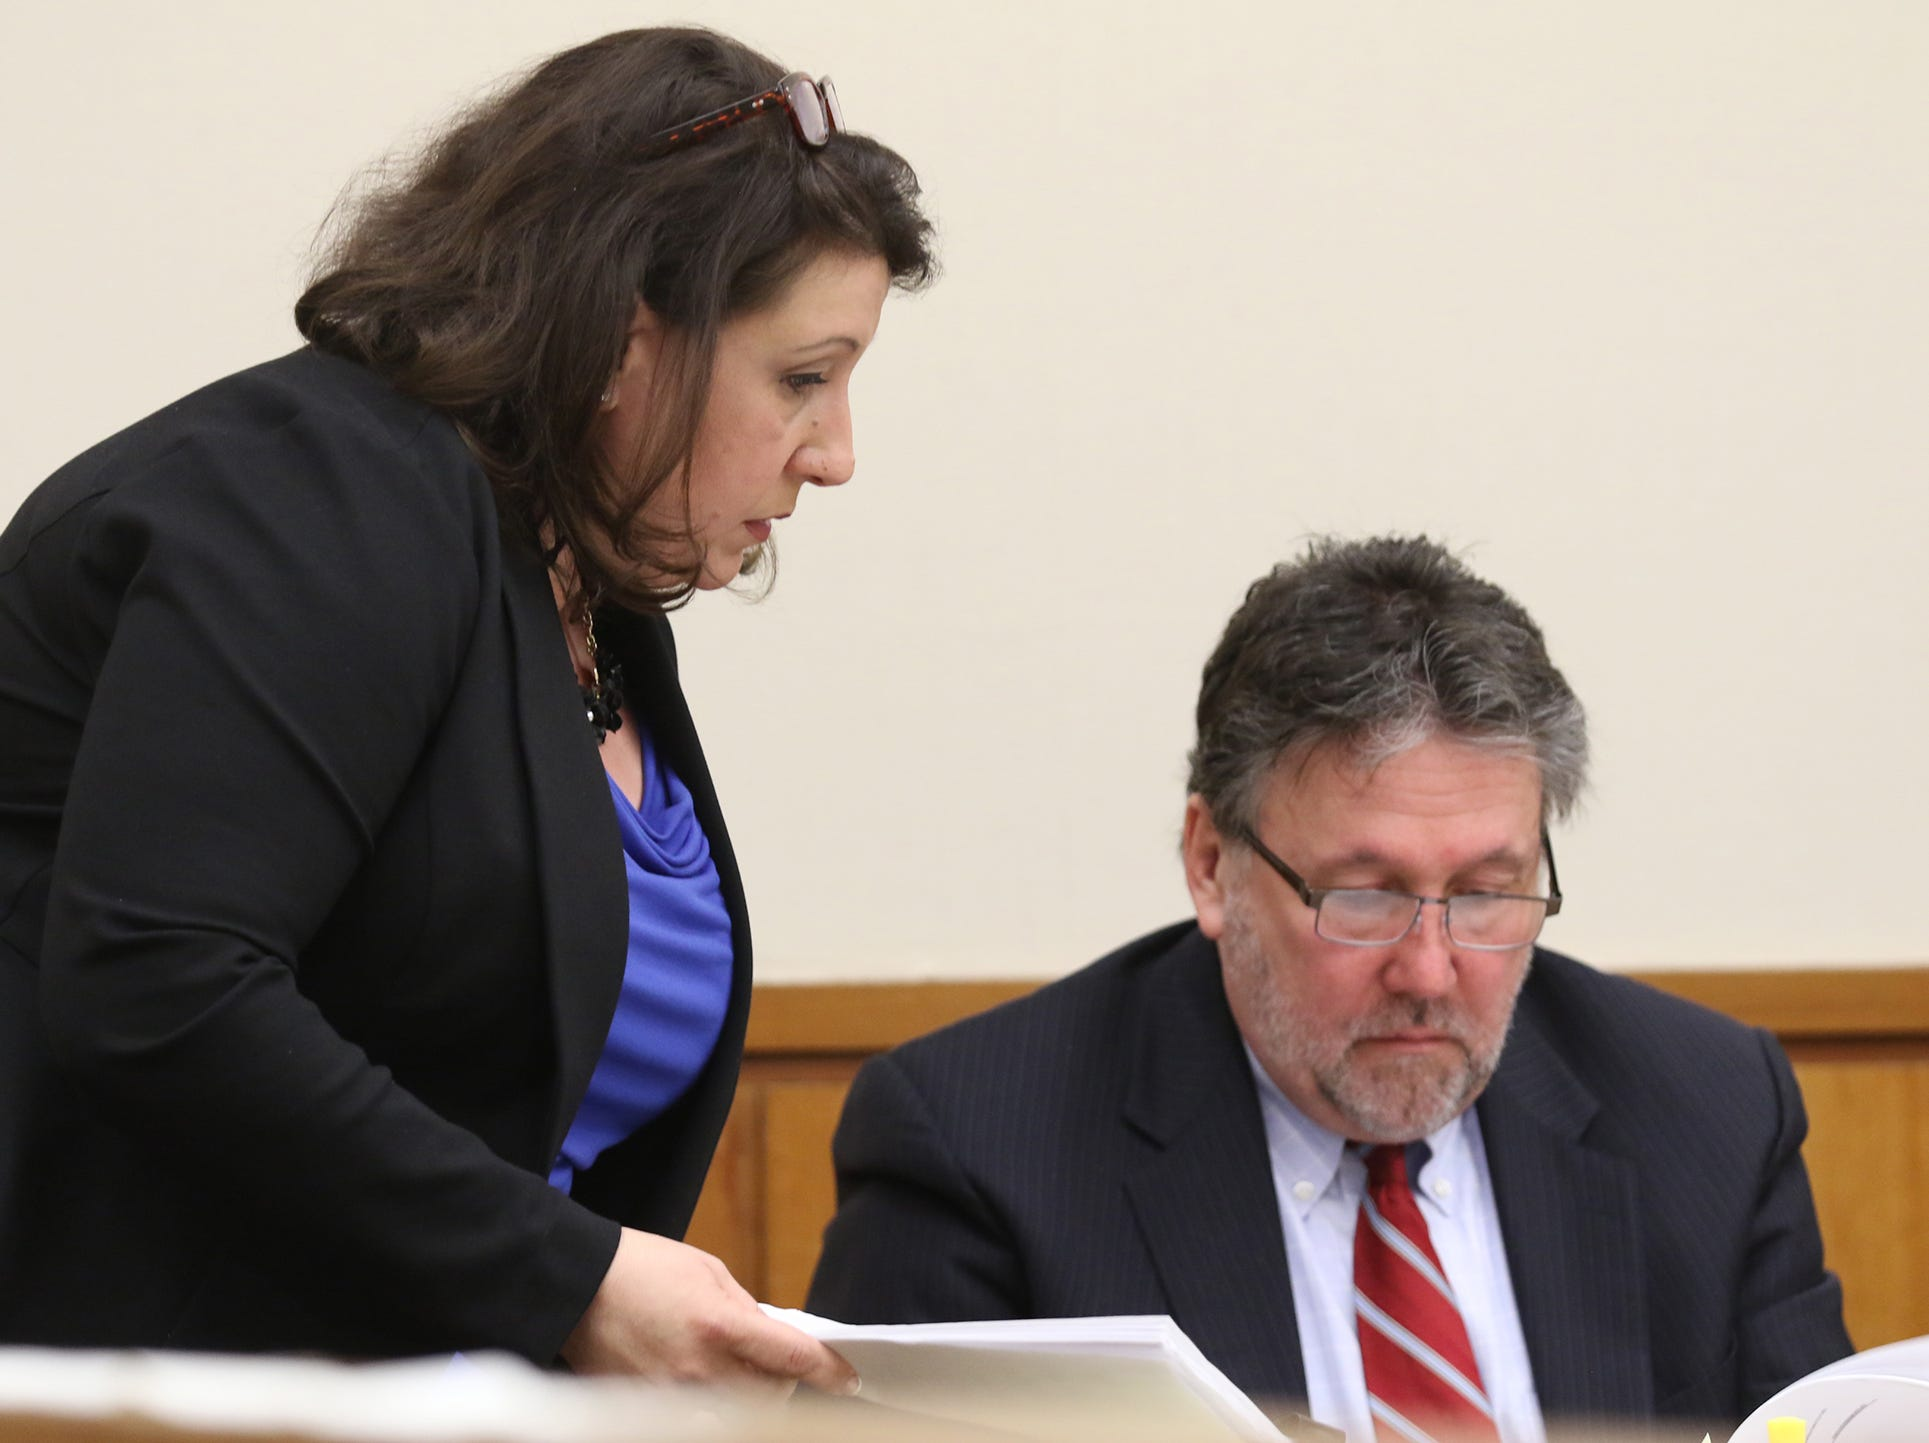 Assistant District Attorney Gina Clark shows medical records of Christopher Pate to Clark Zimmermann, Rochester police officer Michael Sippel's lawyer.